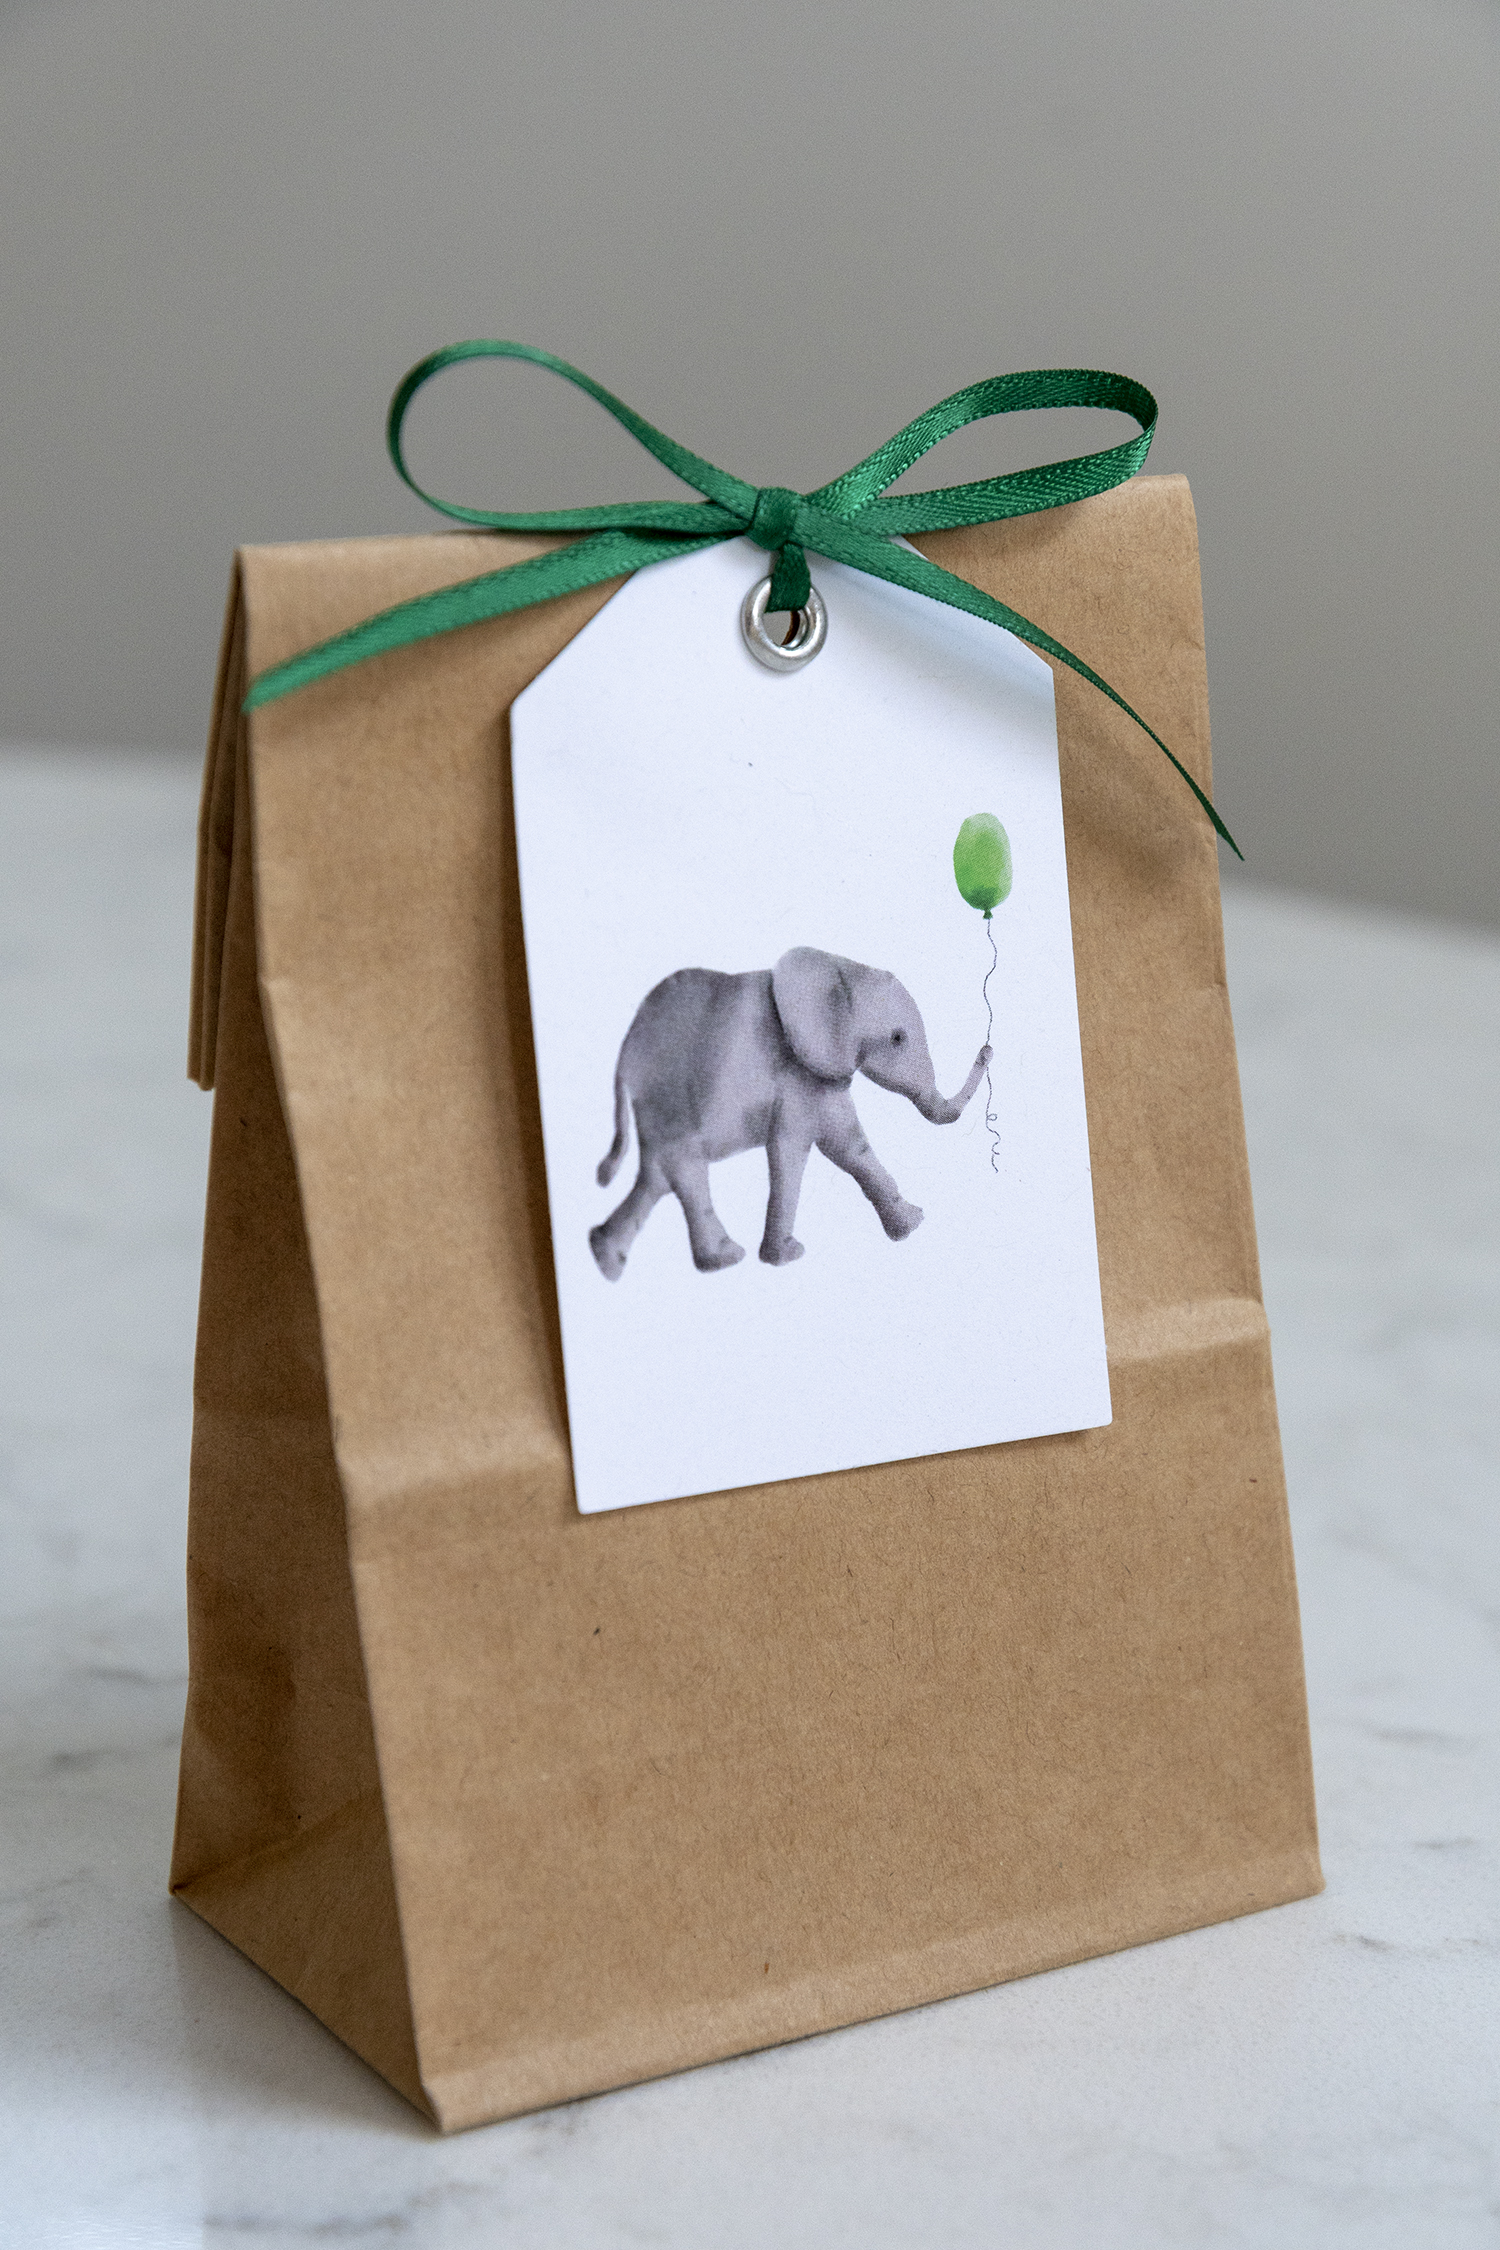 It's just a photo of Printable Baby Gift Tags intended for elegant